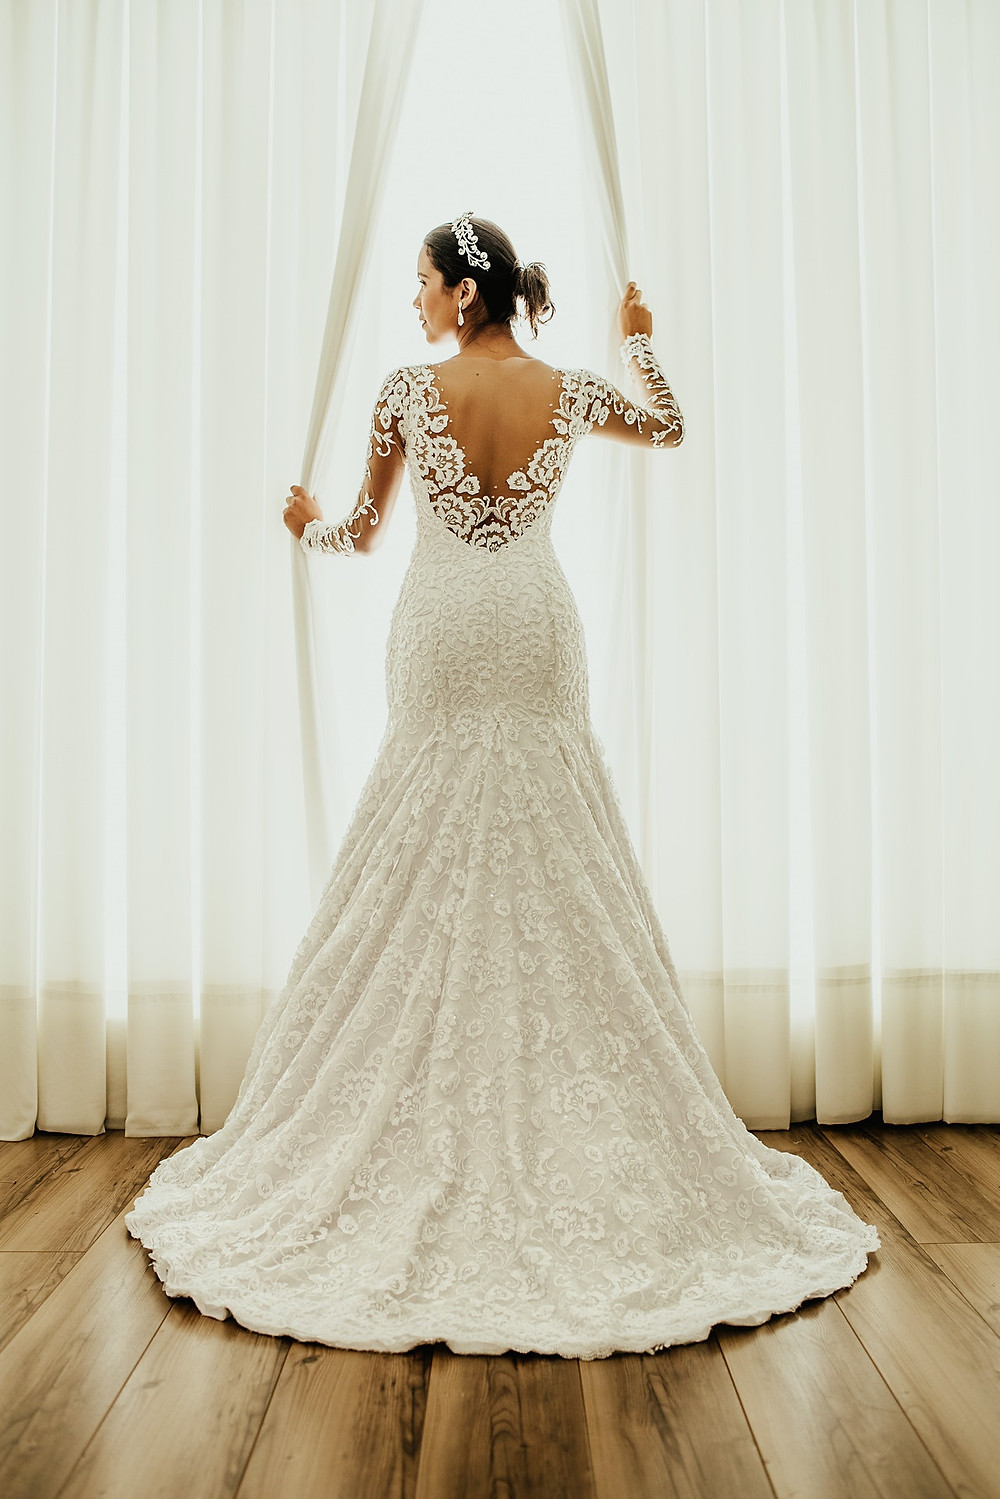 a bride in a white gown